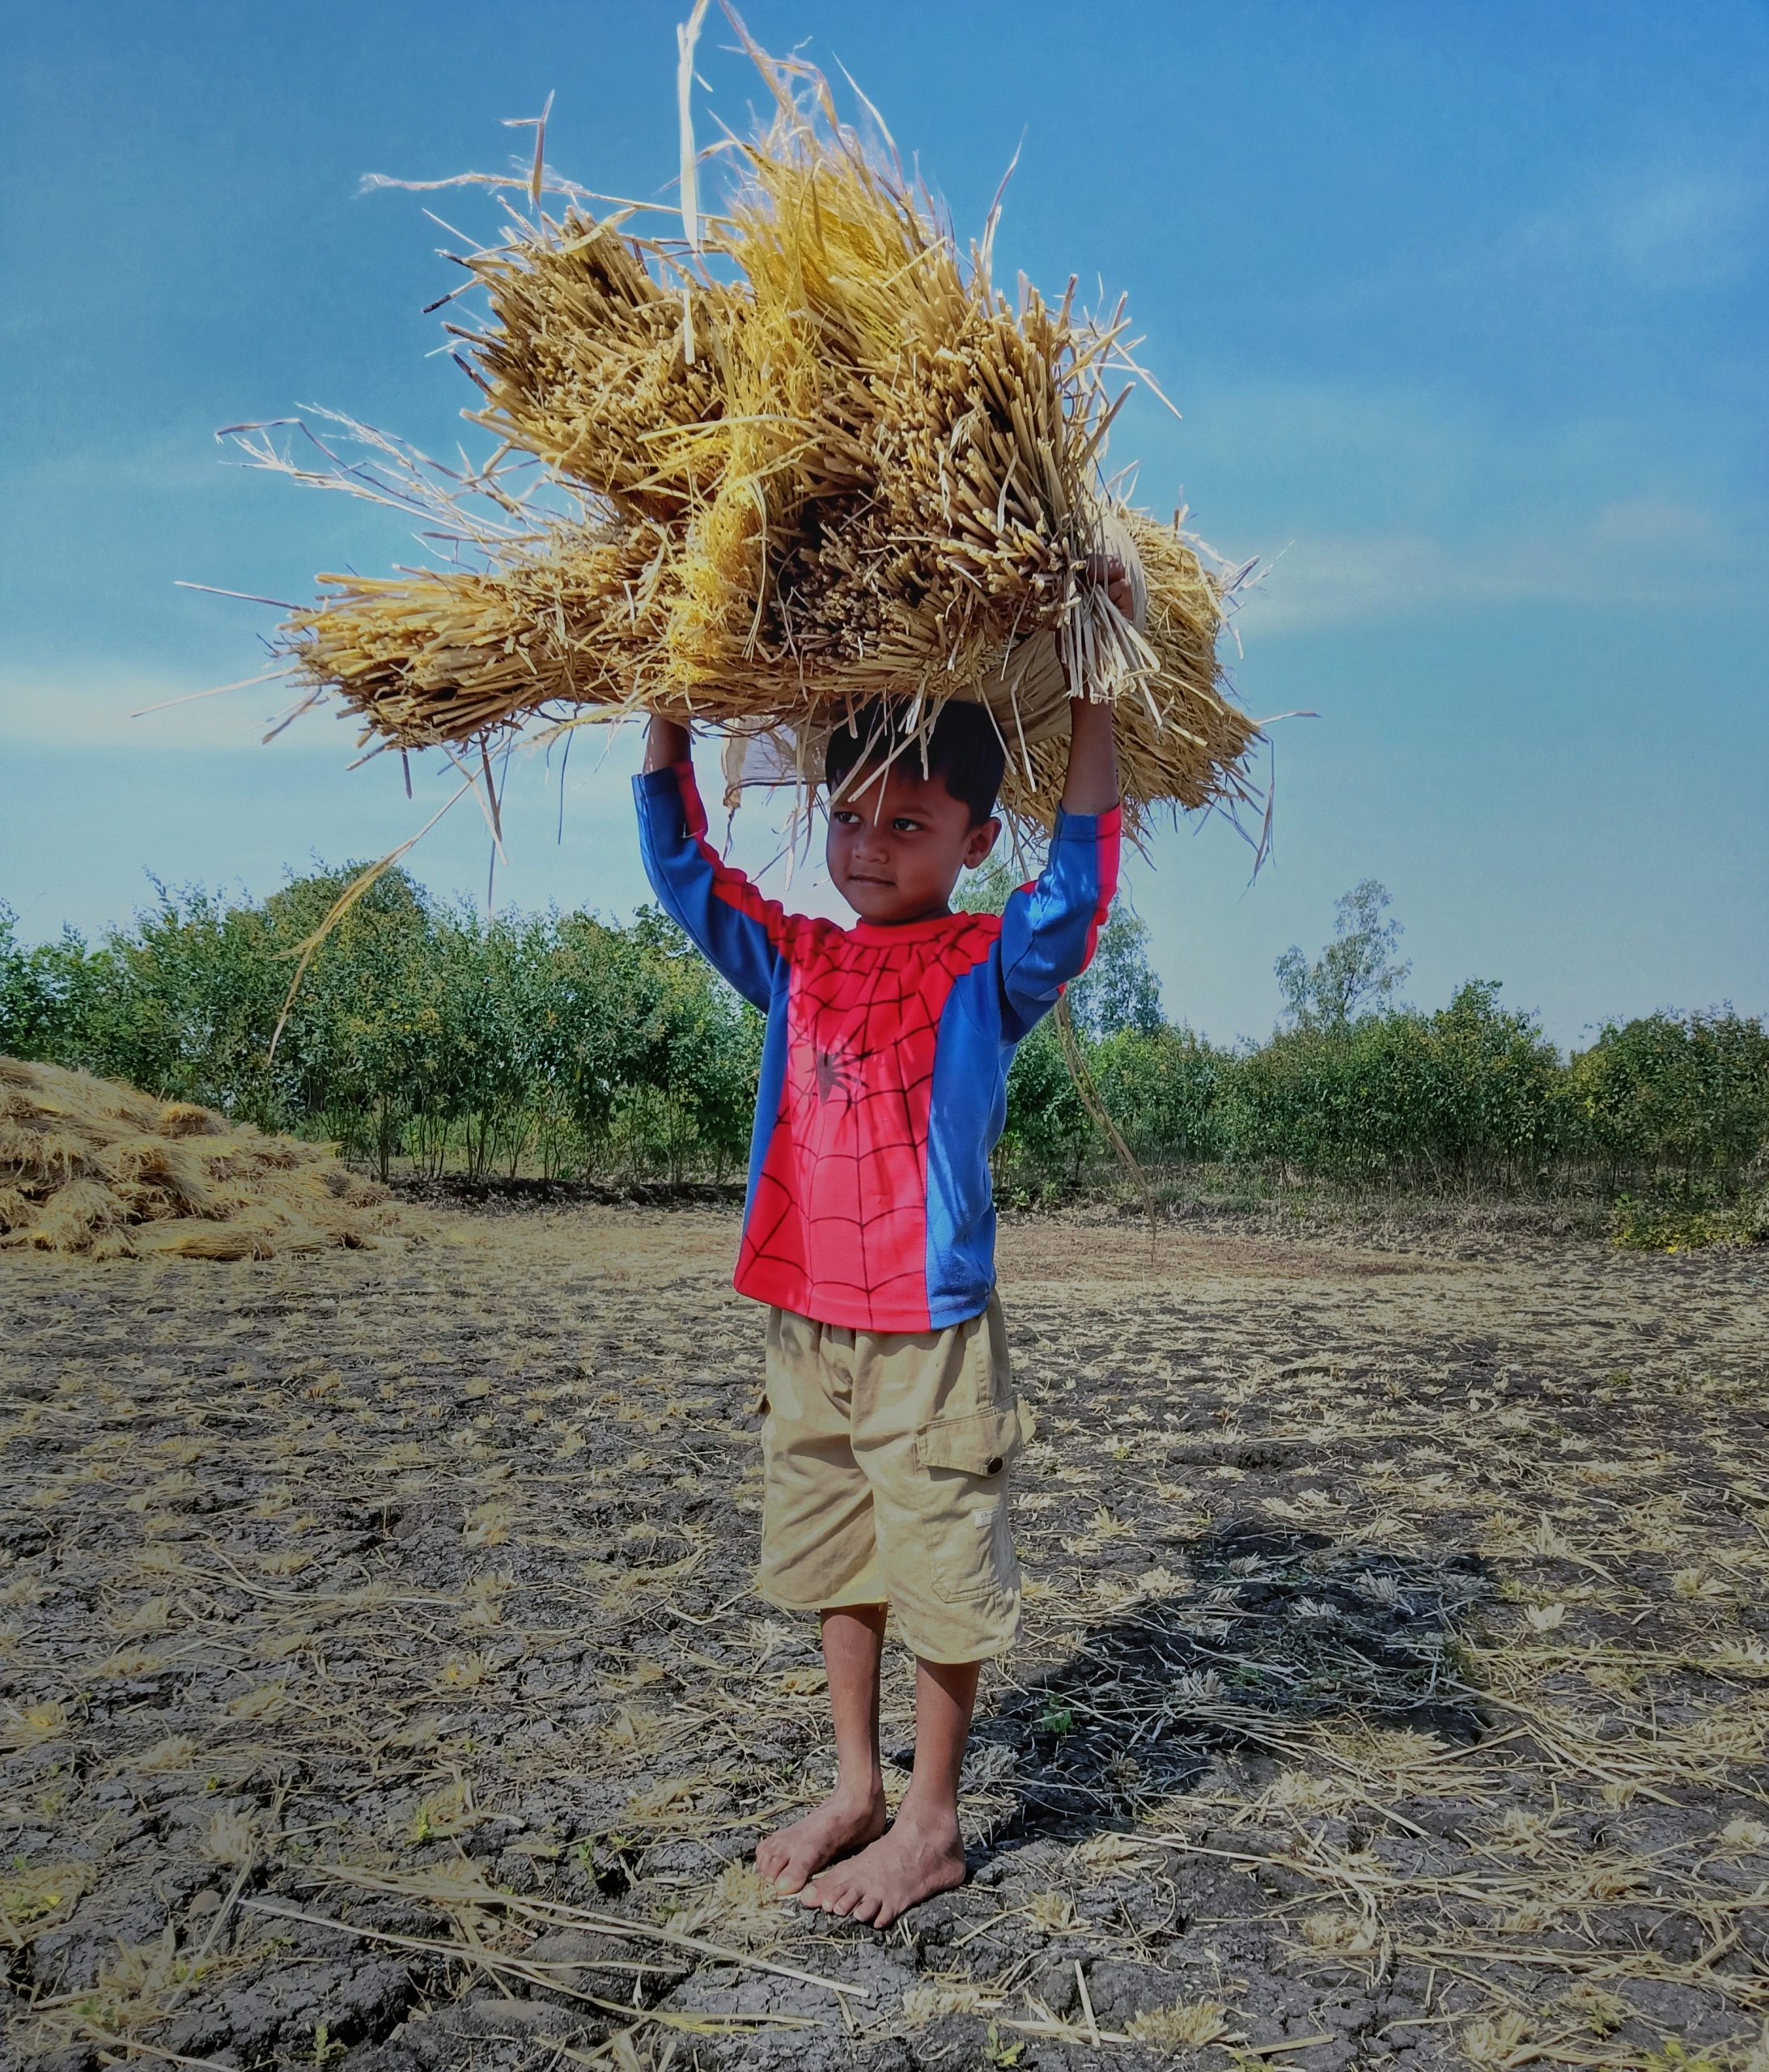 A little boy carrying rice plants